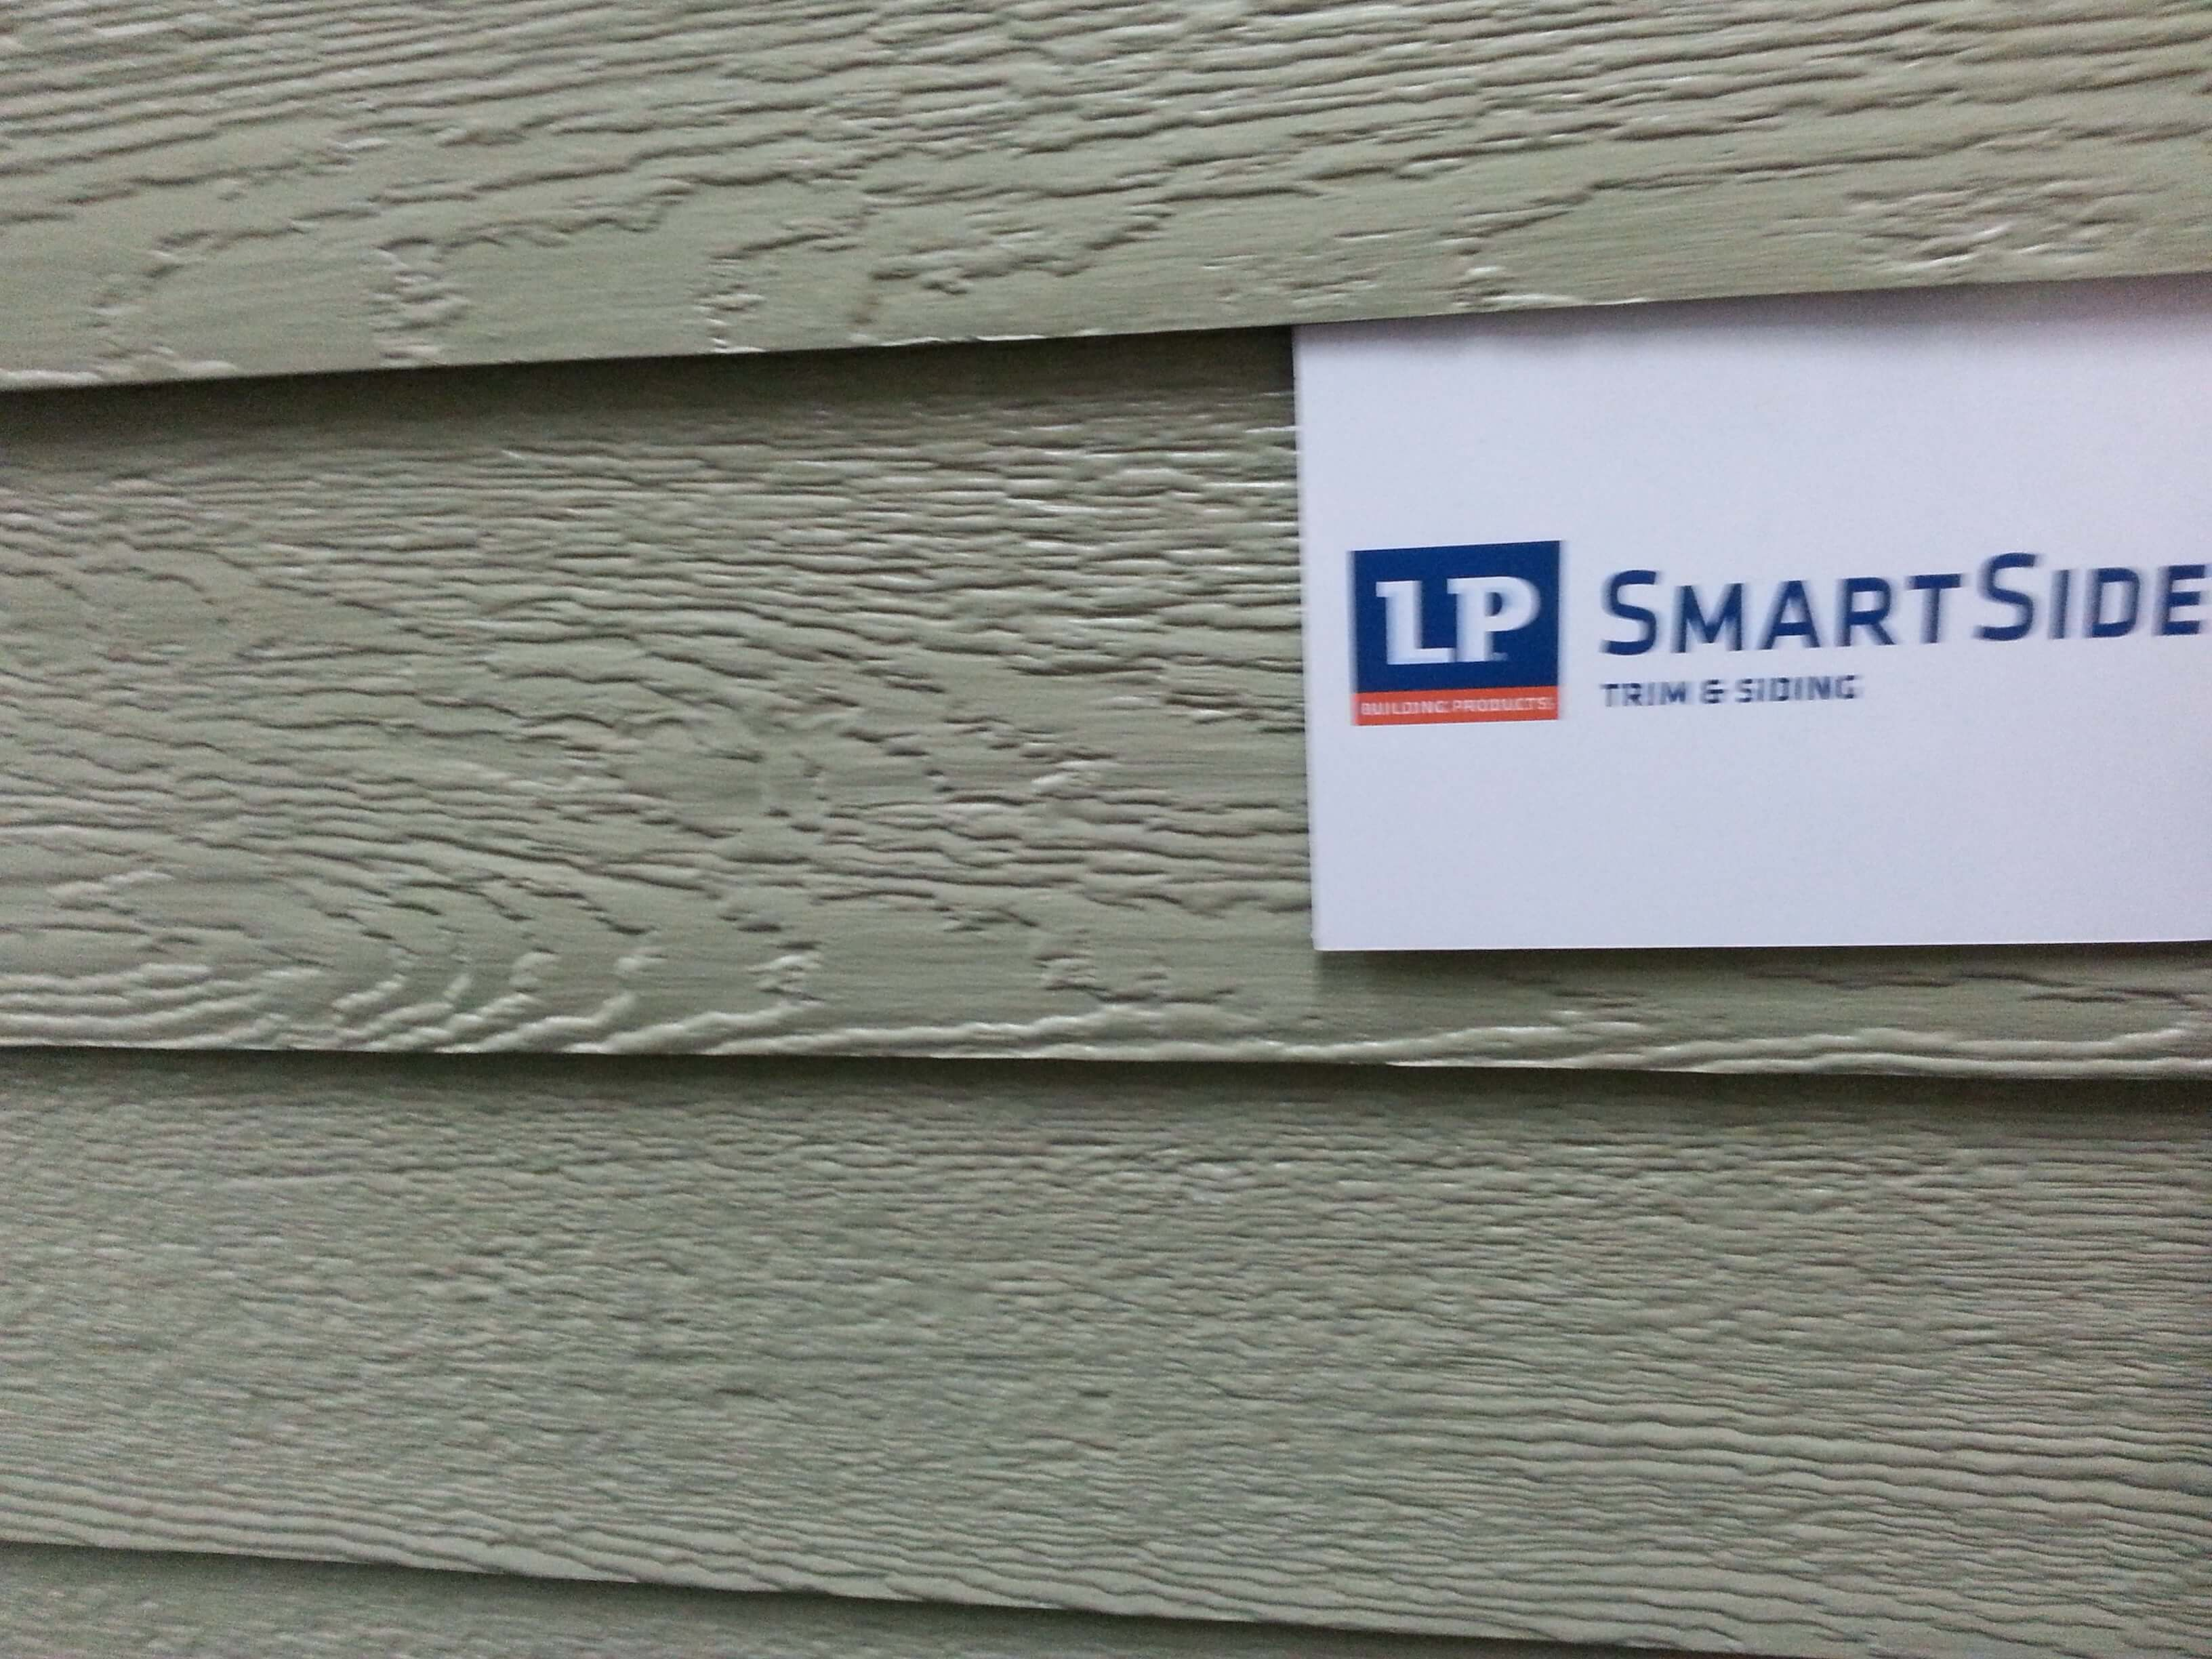 Siding Replacement Wars James Hardie Vs Lp Smartside In